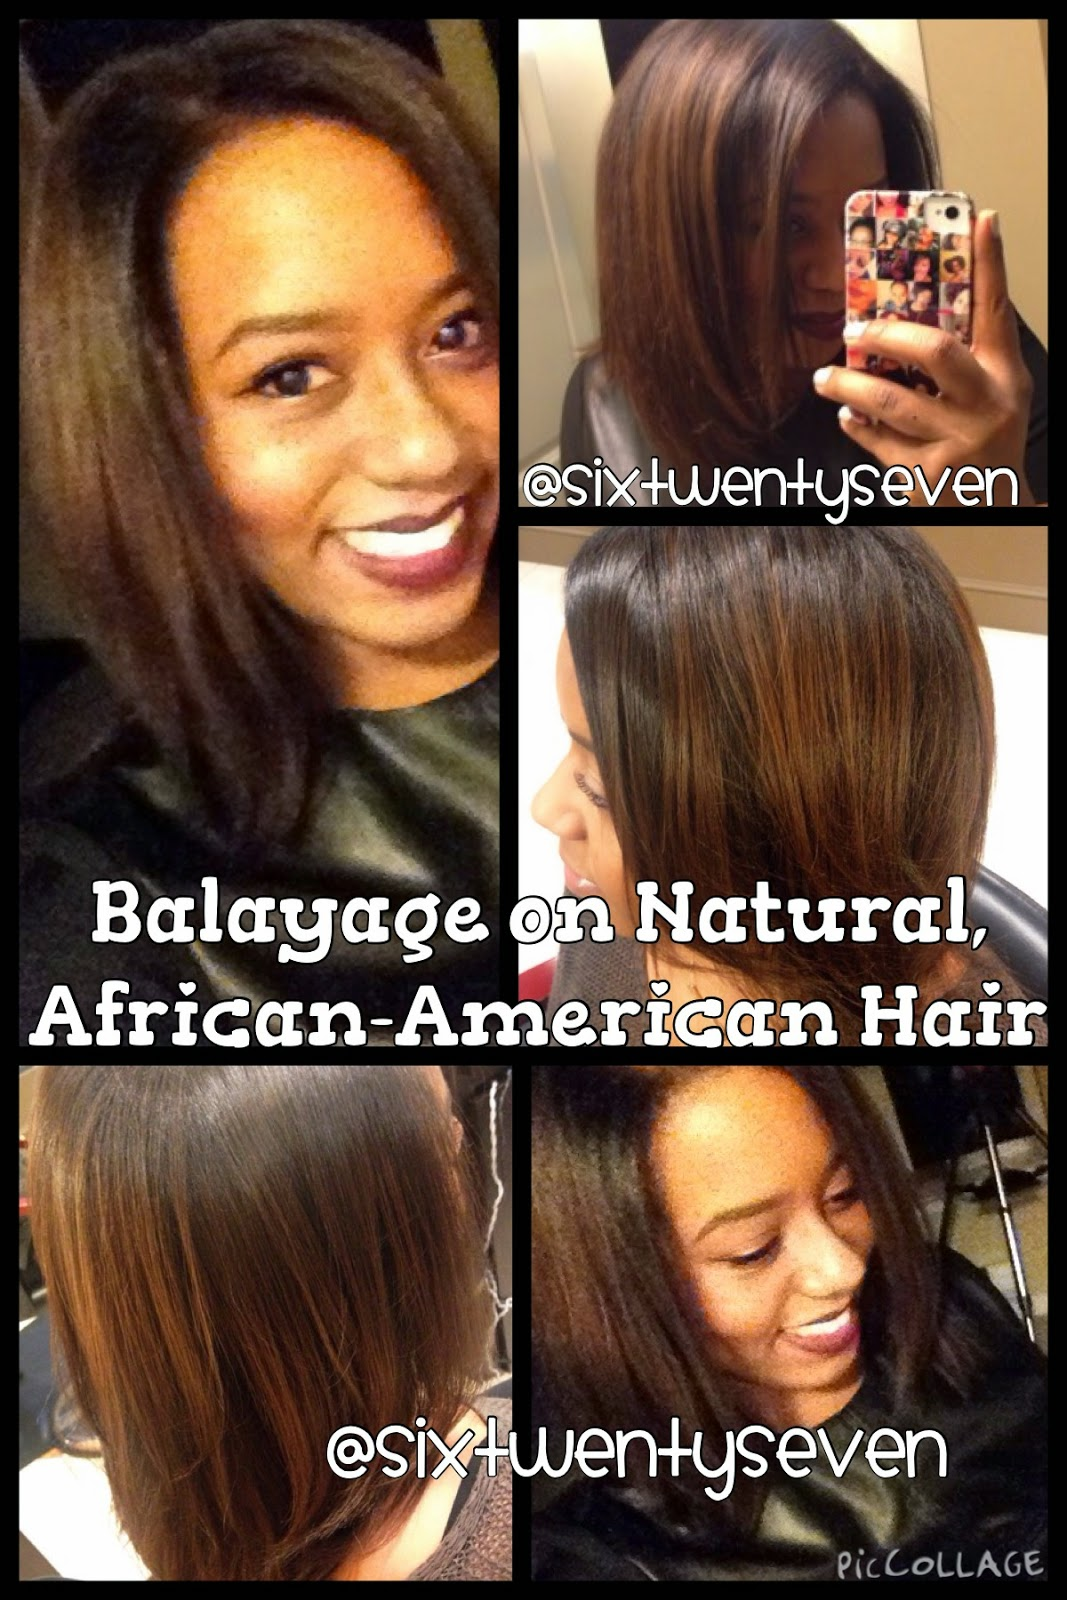 Six Twenty Seven: Balayage results on Natural, African-American Hair